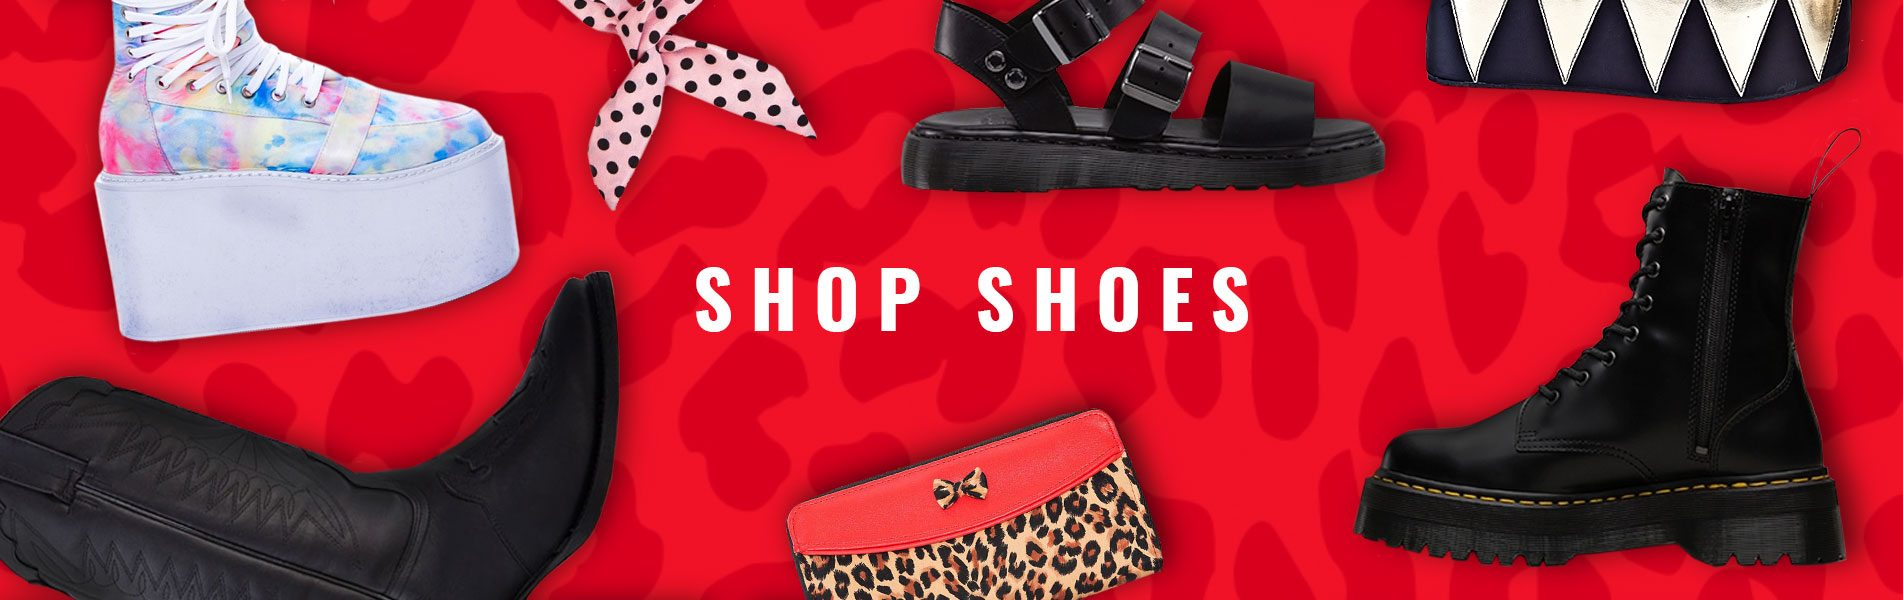 BUY sHOES ONLINE BANNER